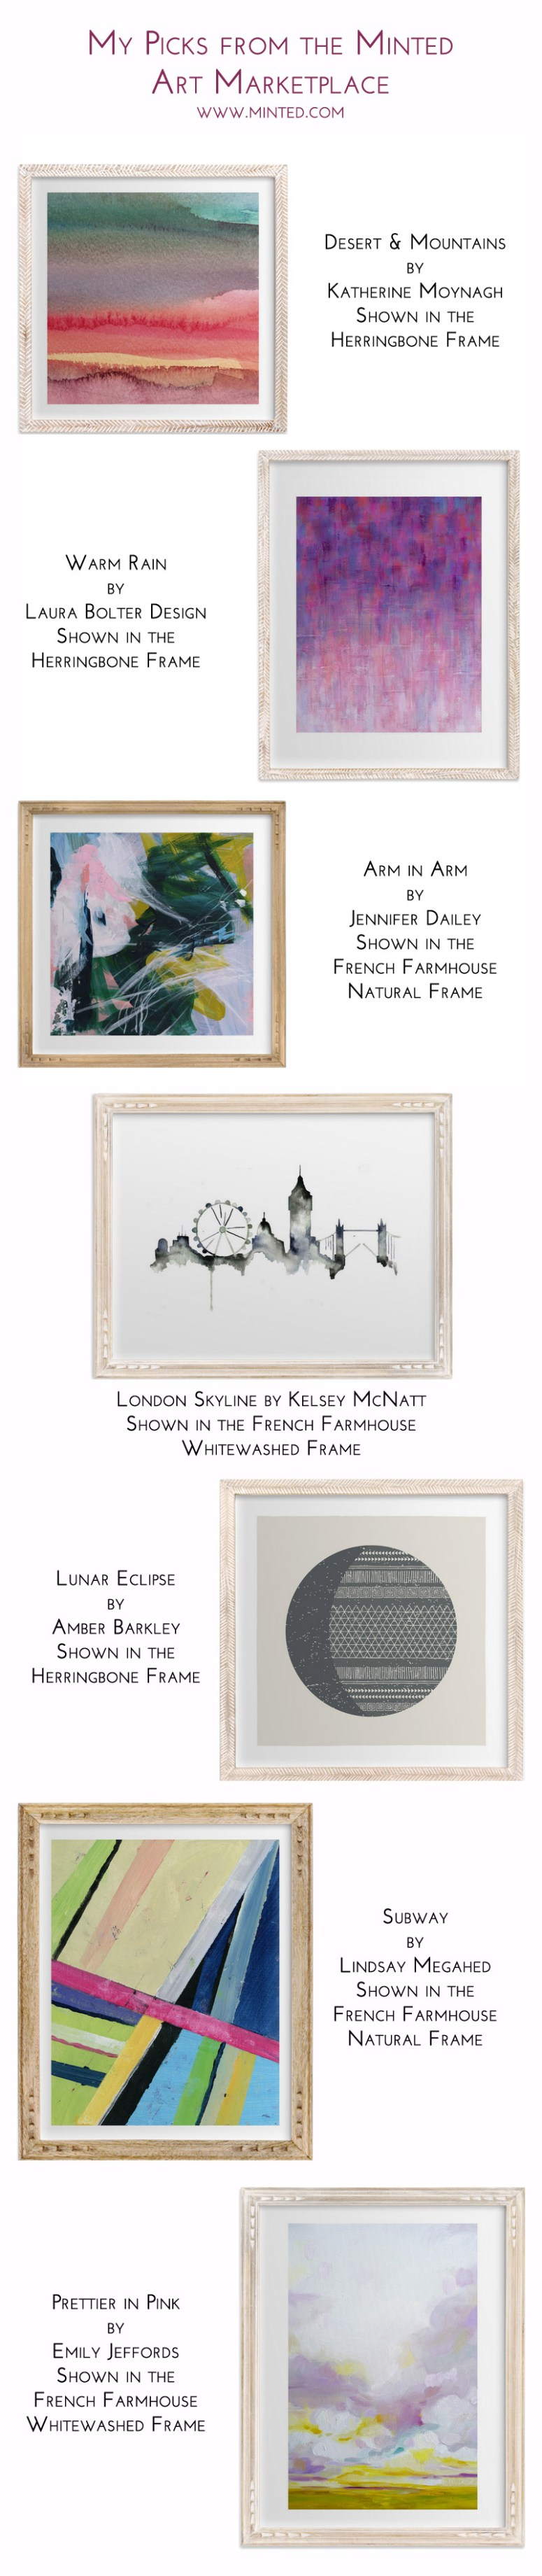 My Favorite Picks from the Minted Art Marketplace